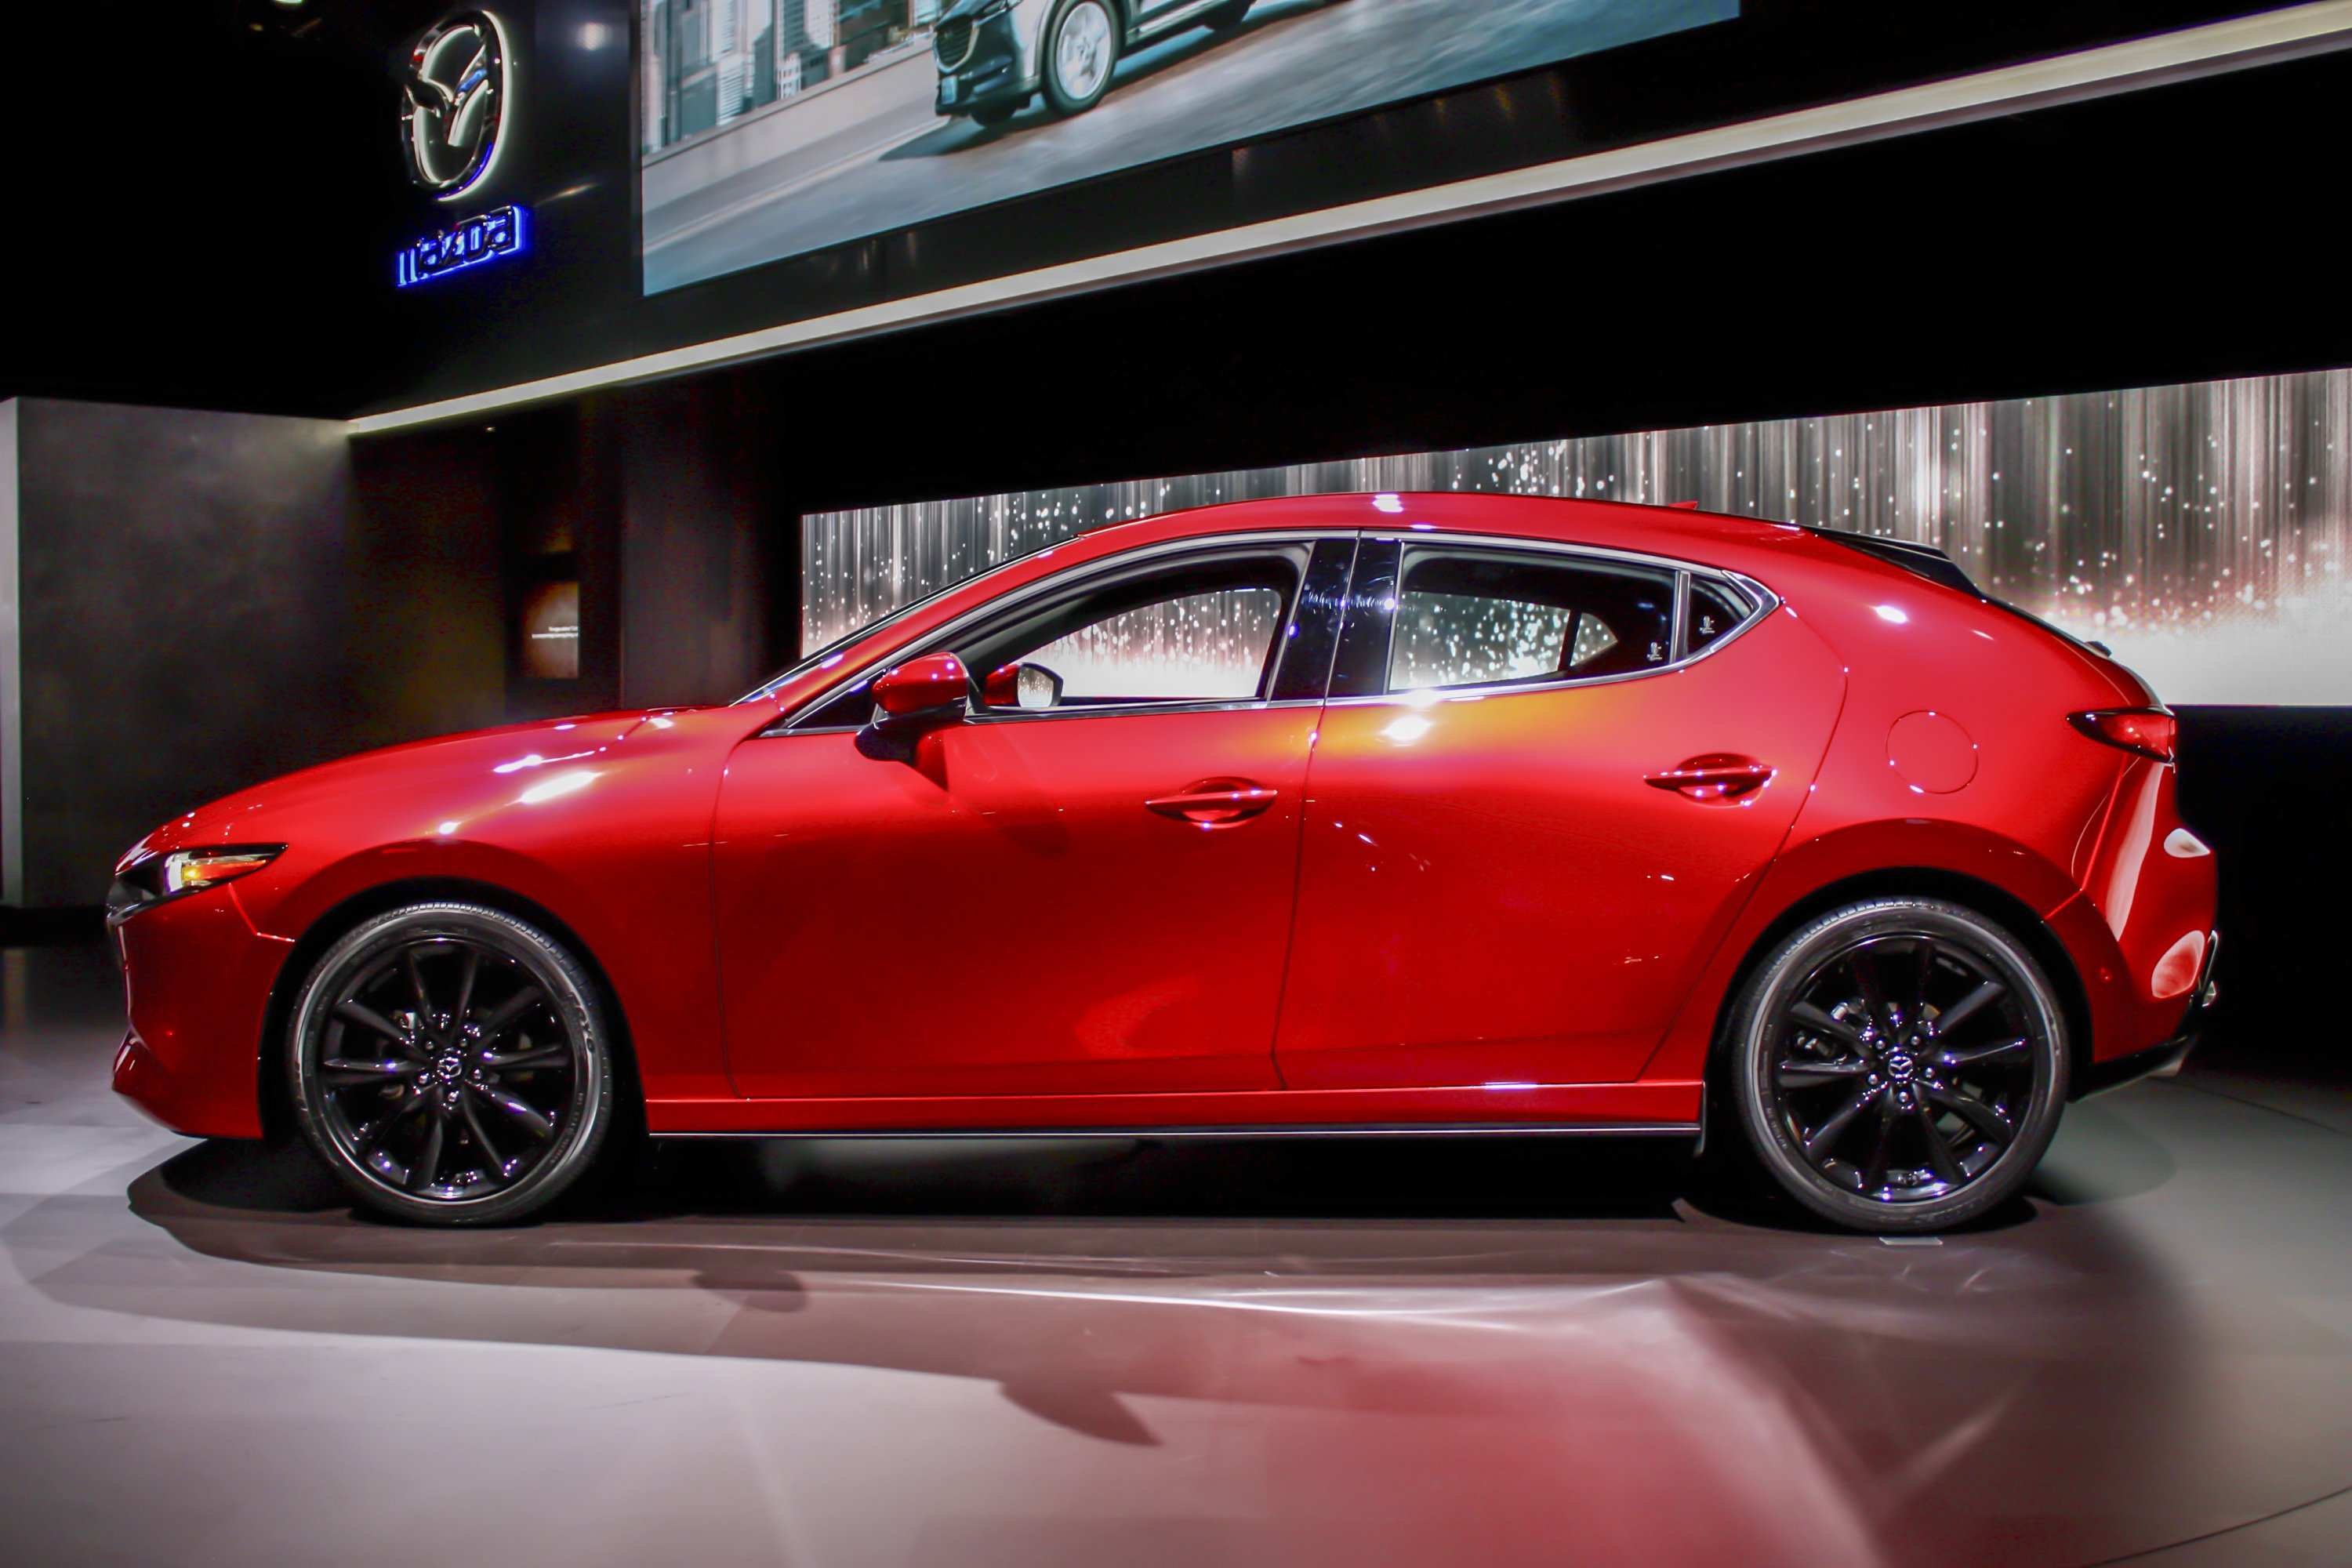 58 All New 2020 Mazda 3 Awd Price And Release Date